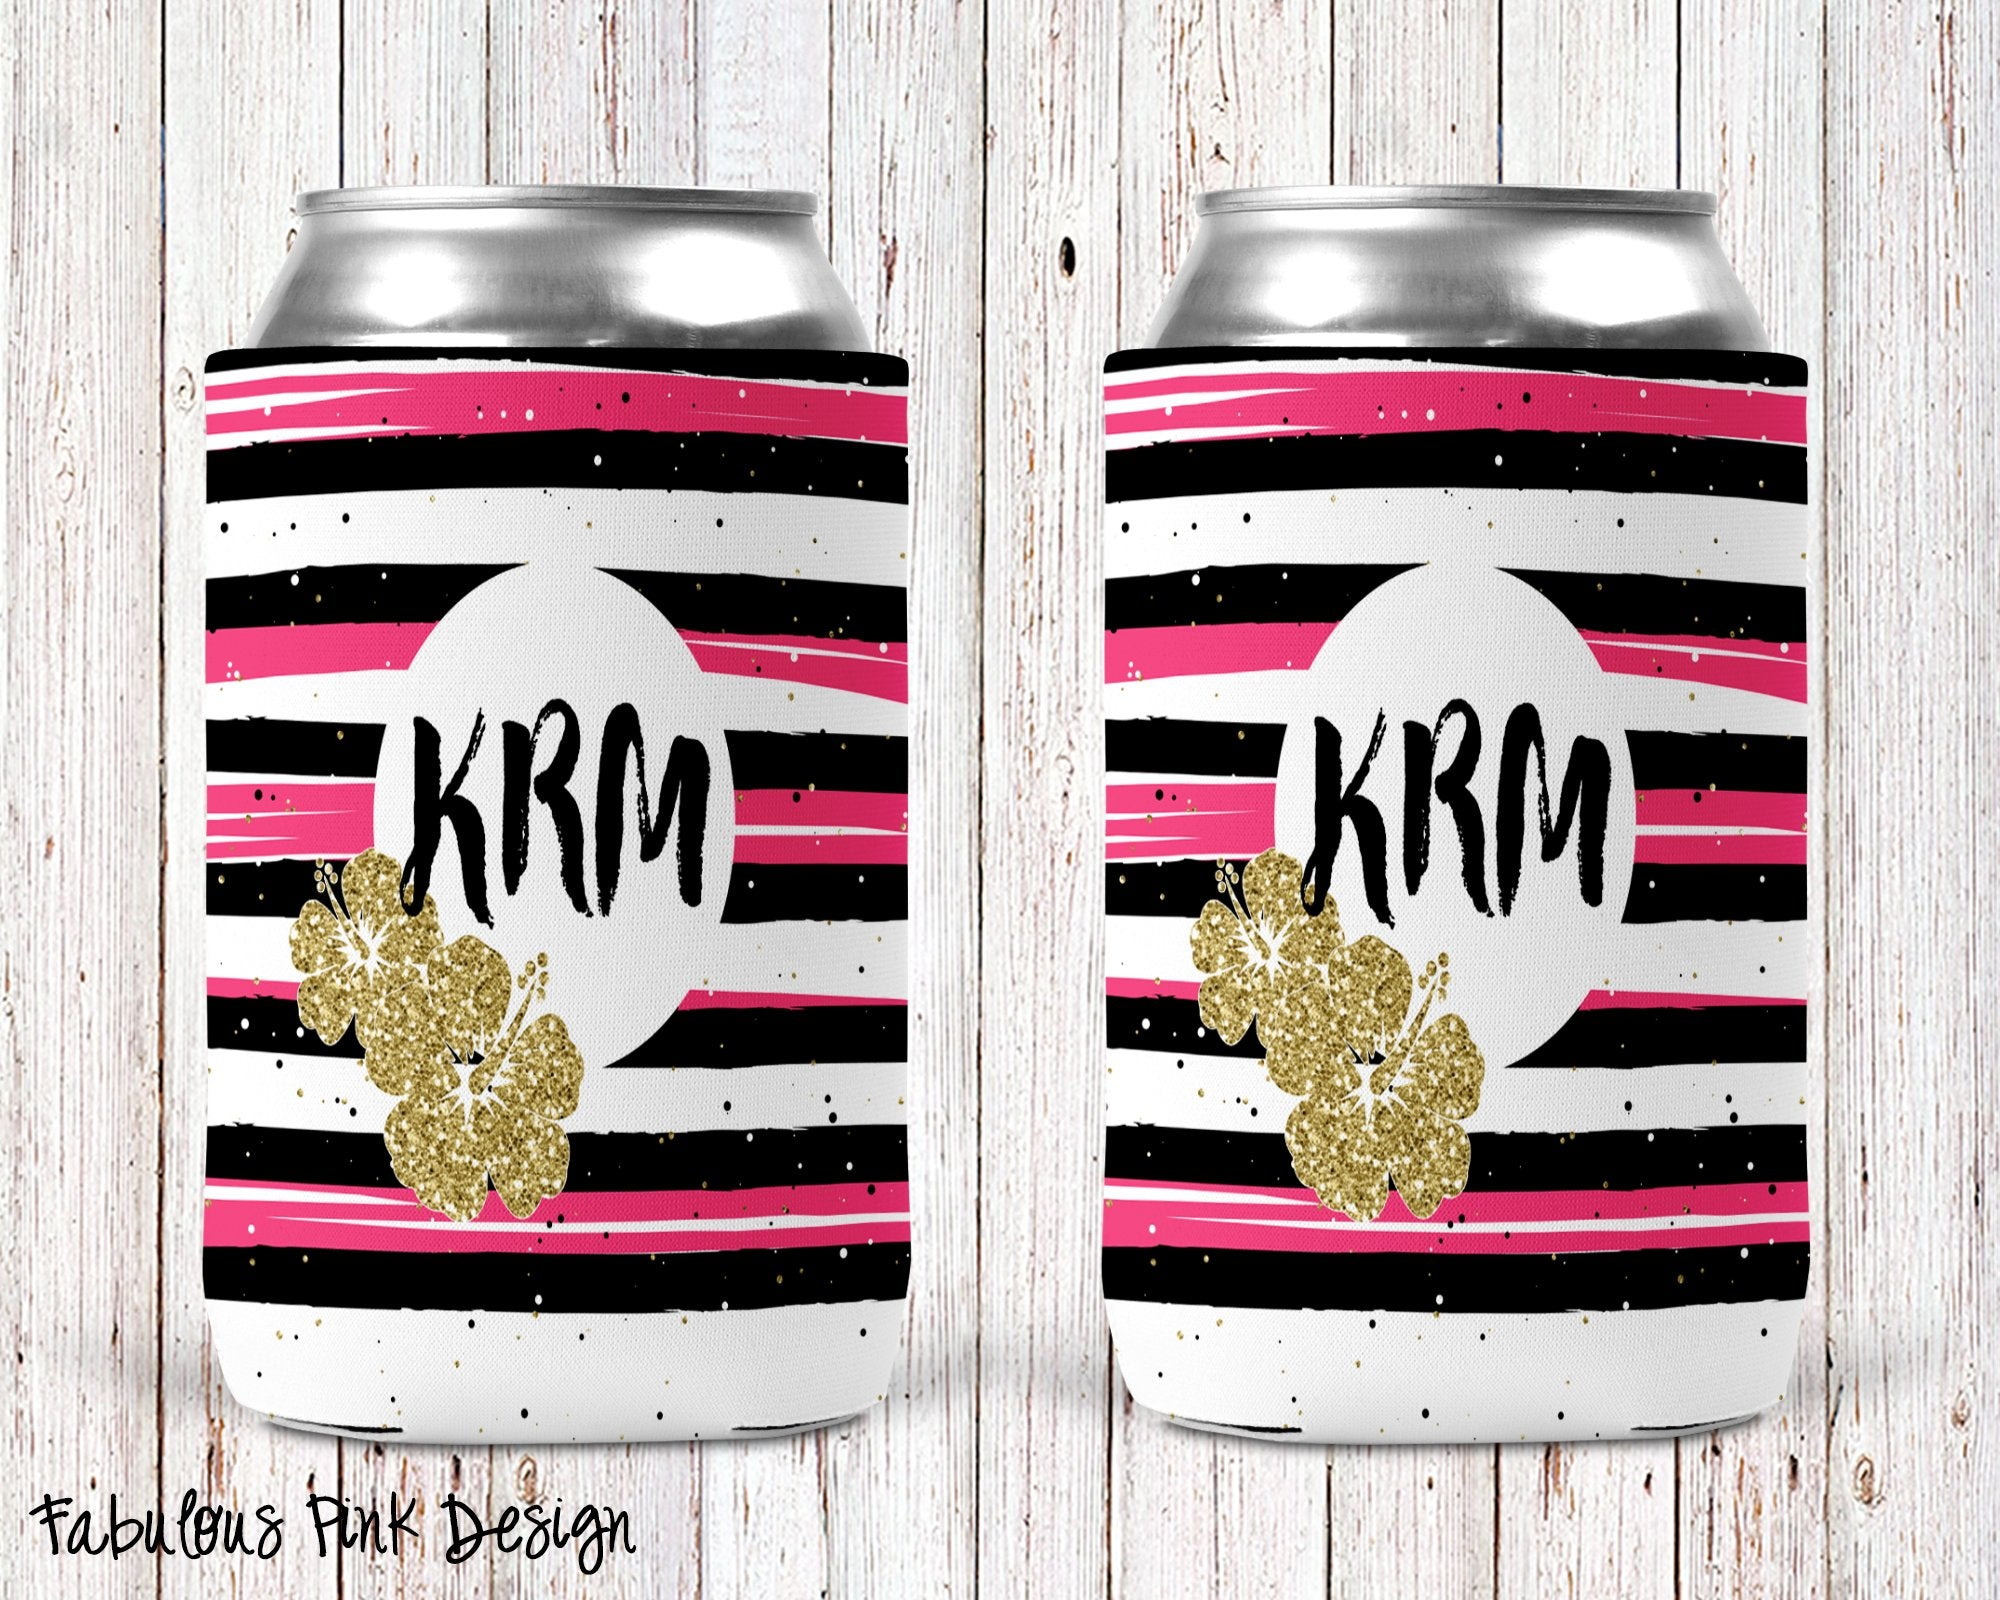 Fabulous Pink Personalized Can Cooler